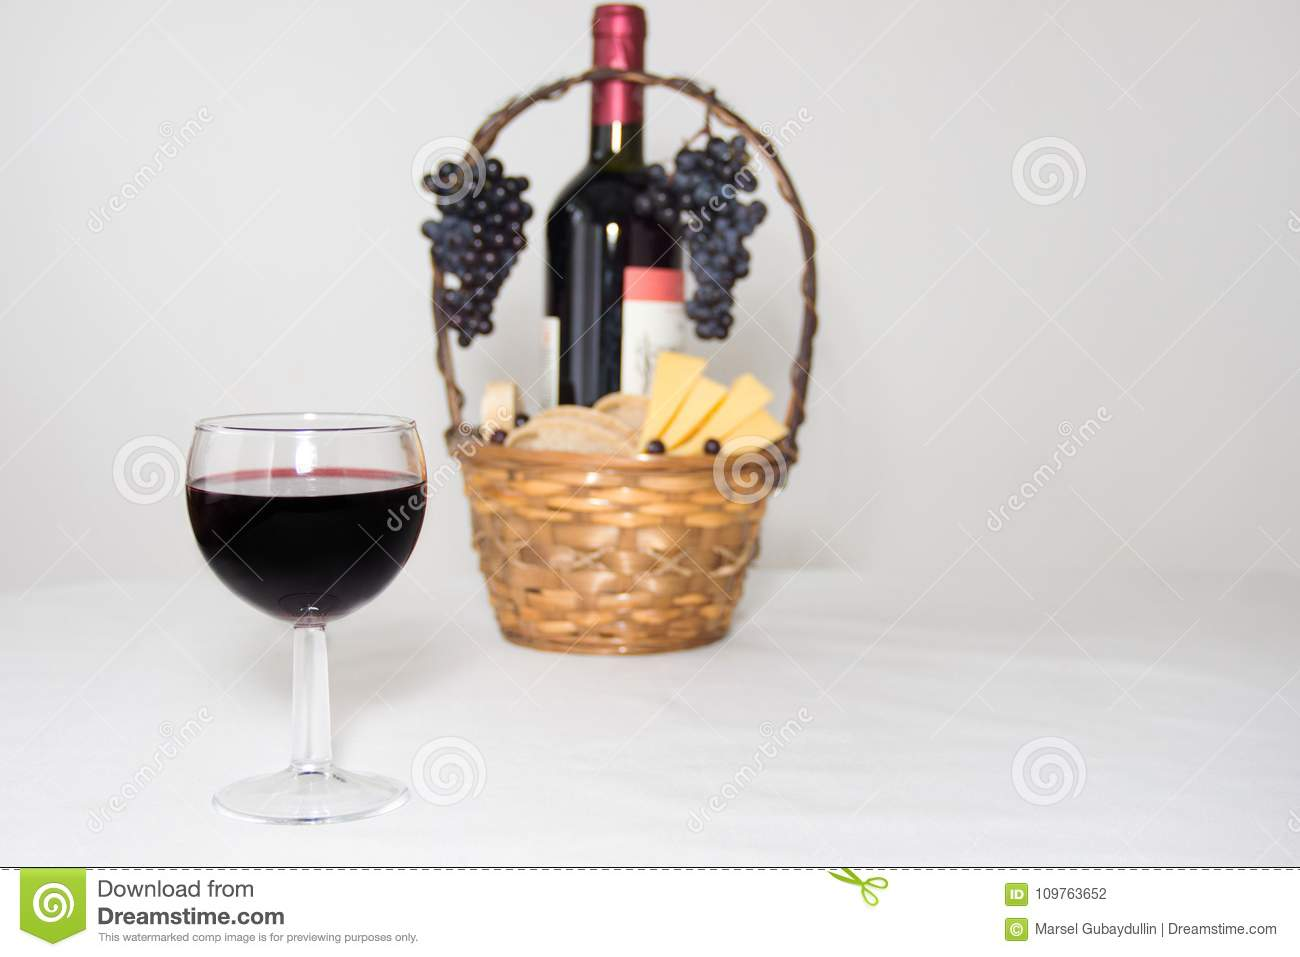 A glass of wine. A bottle of red wine, grapes and picnic basket with cheese slices on white background.